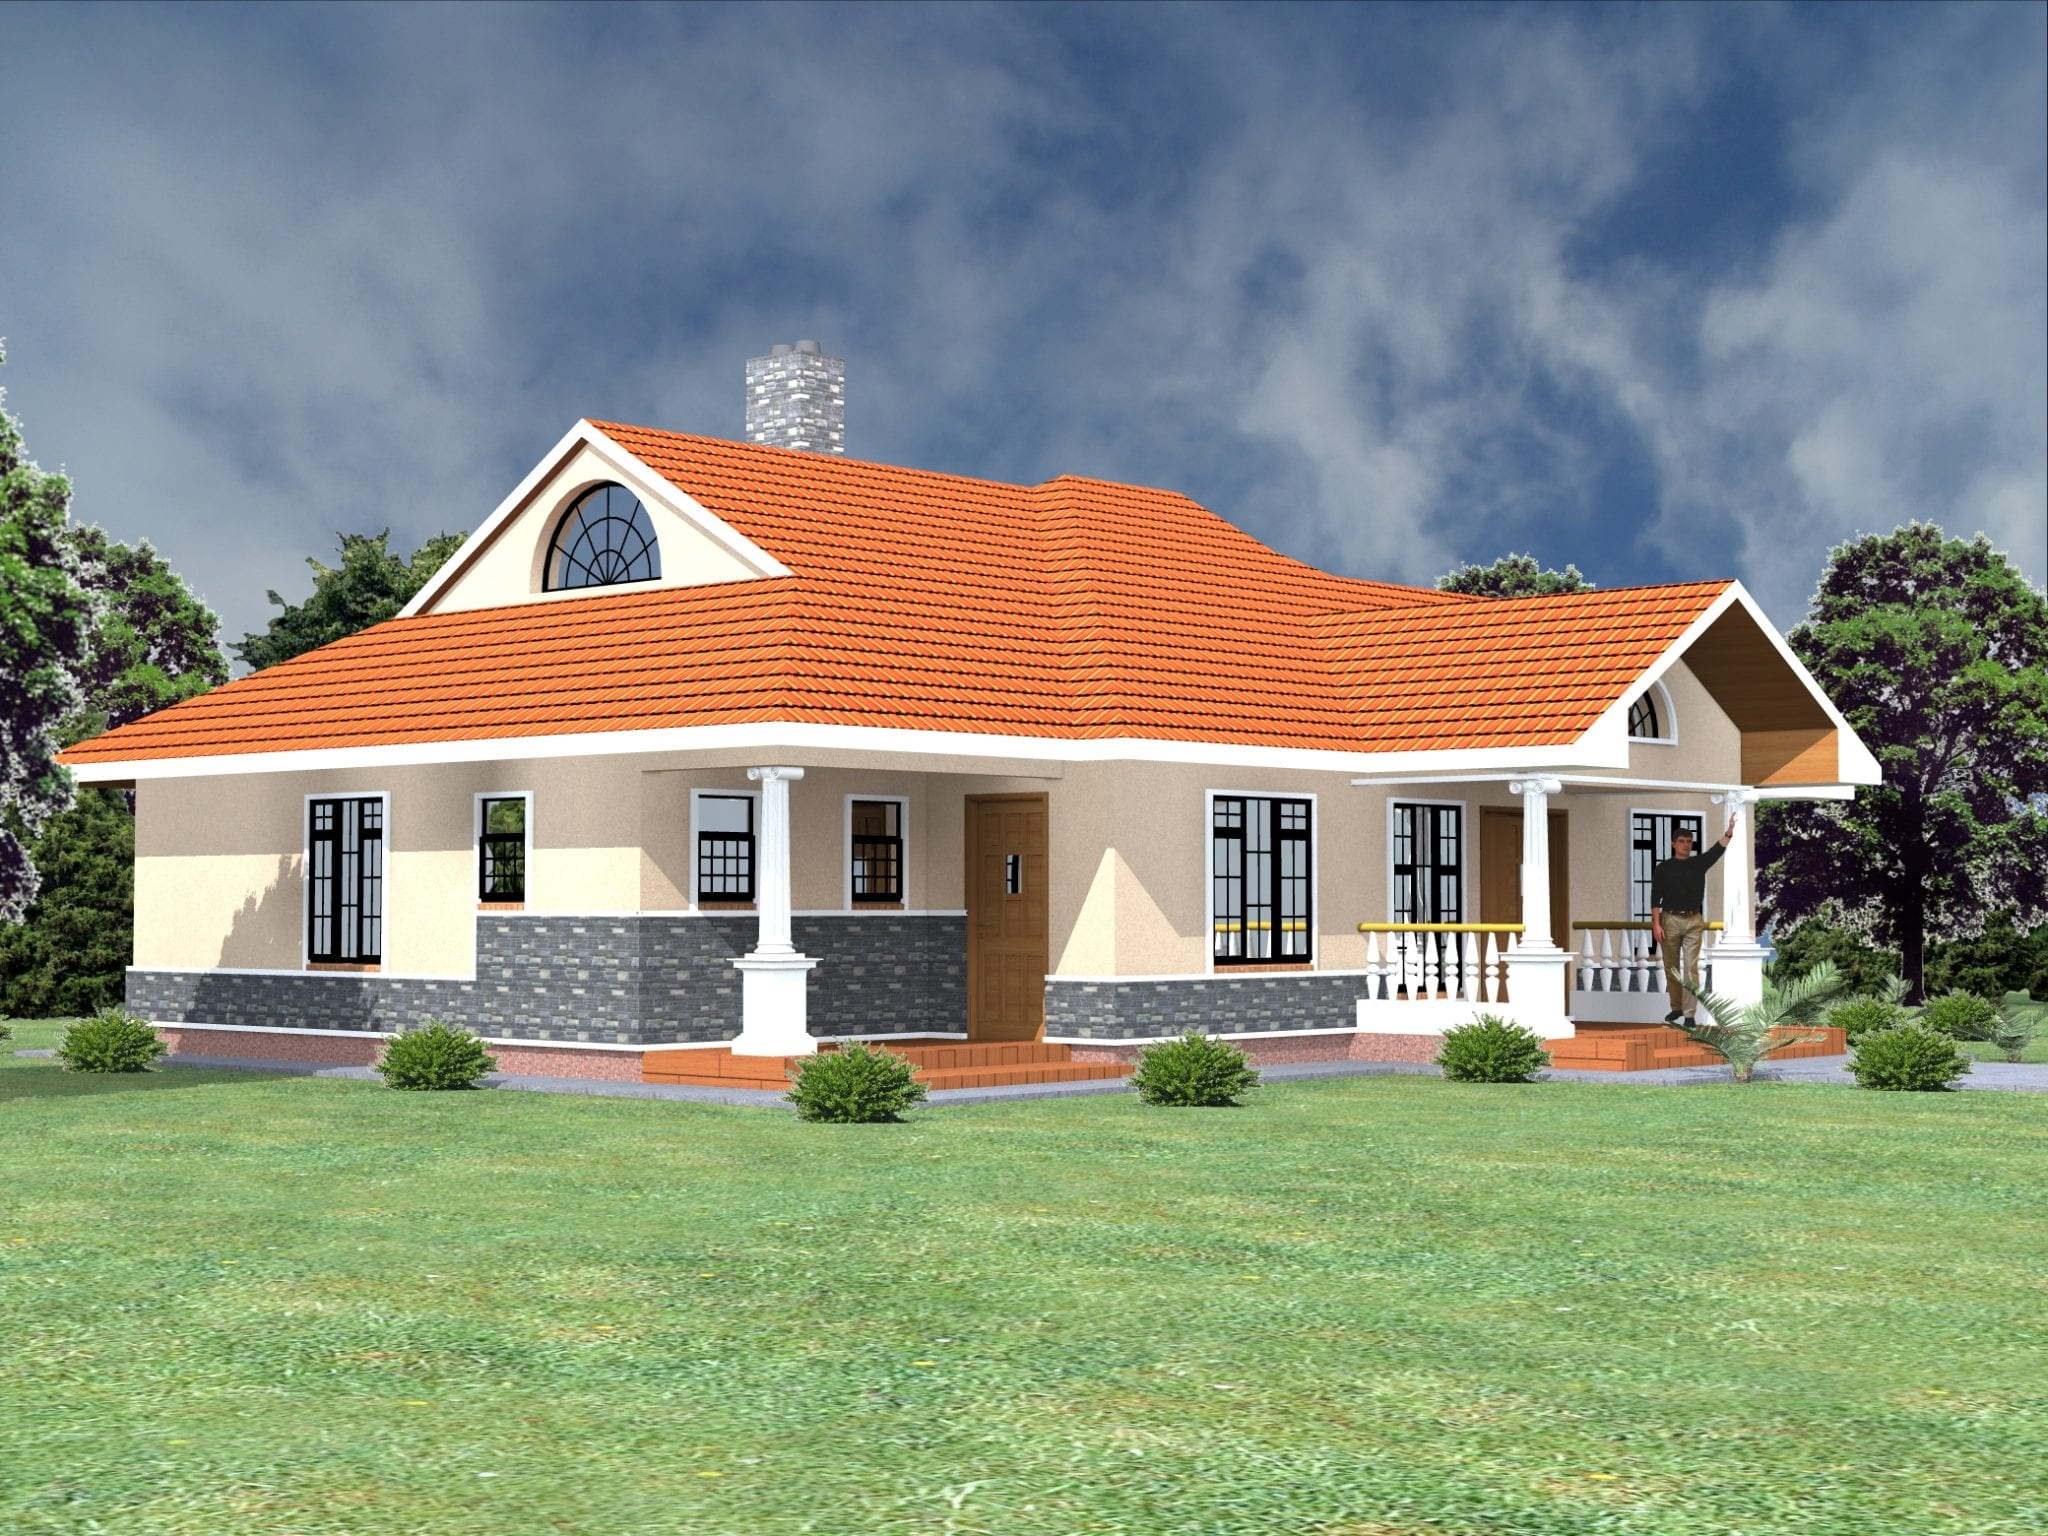 Three bedroom bungalow house plans in kenya | HPD Consult